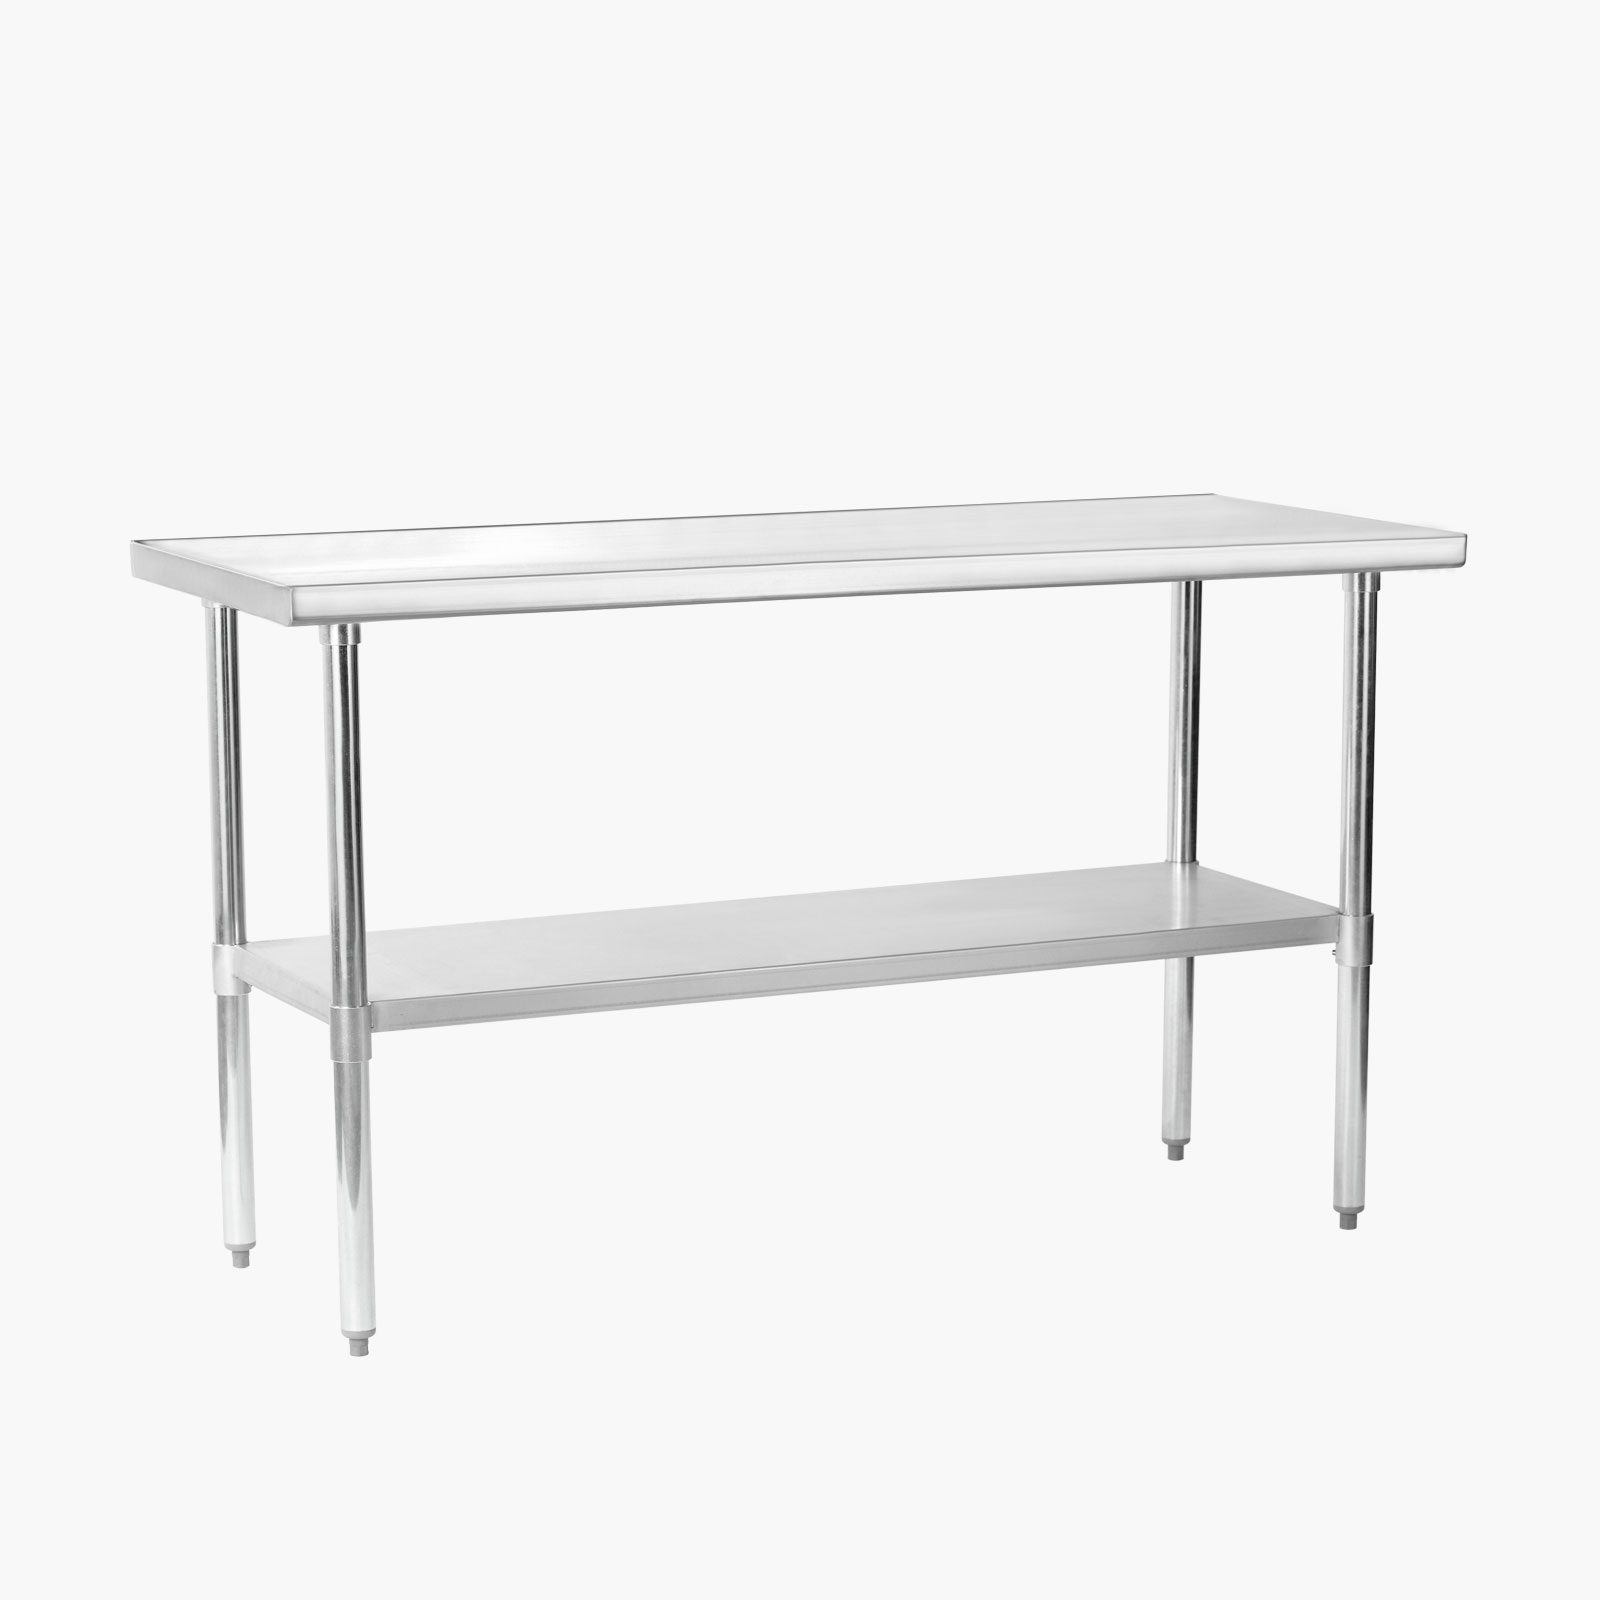 60 x 24 commercial stainless steel work bench catering